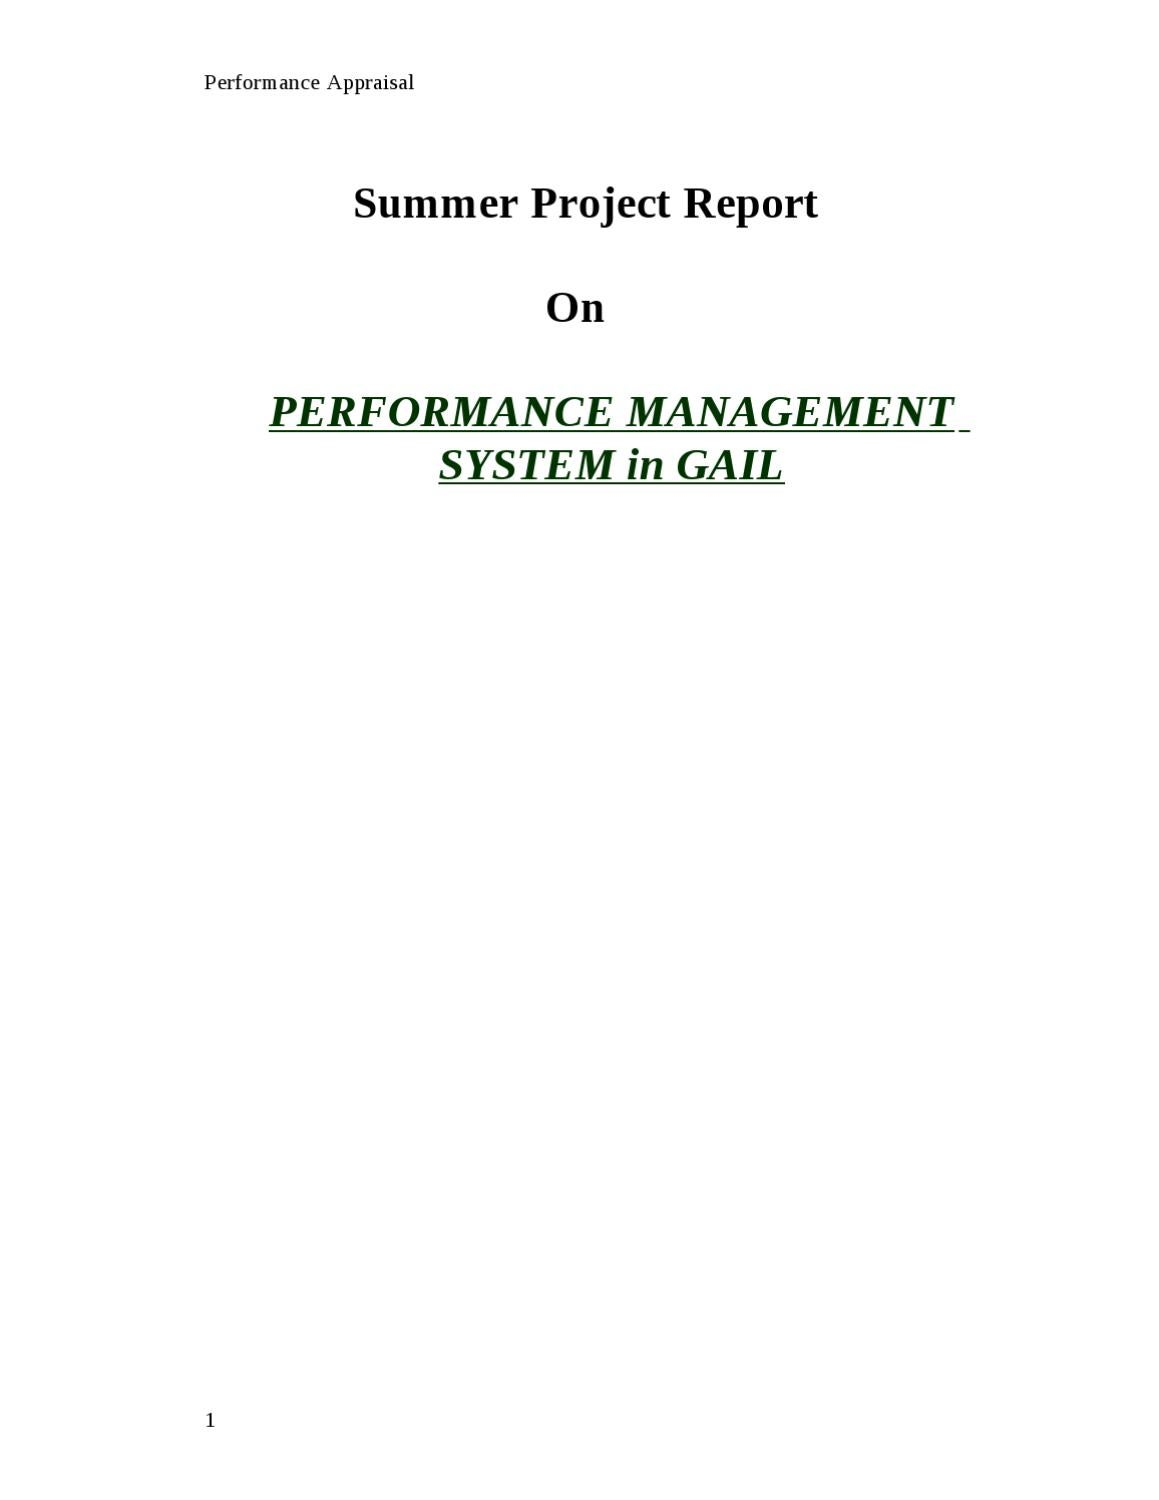 Dissertation report on performance management system